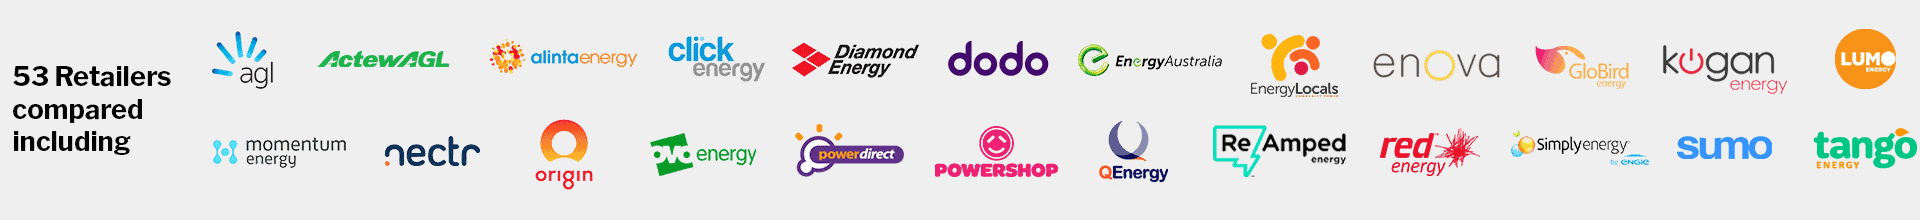 WATTever compares 53 electricity retailers including AGL, ActewAGL, Alinta Energy, Blue NRG, click energy, Covau, DC Power Co, Diamond Energy, dodo power, Energy Australia, Energy Locals, GloBird Energy, Kogan Energy, Lumo Energy, Mojo Power, nectr, Origin Energy, OVO energy, Powerdirect, Powershop, QEnergy, ReAmped Energy, Red Energy, Simply Energy, Sumo Power and Tango Energy